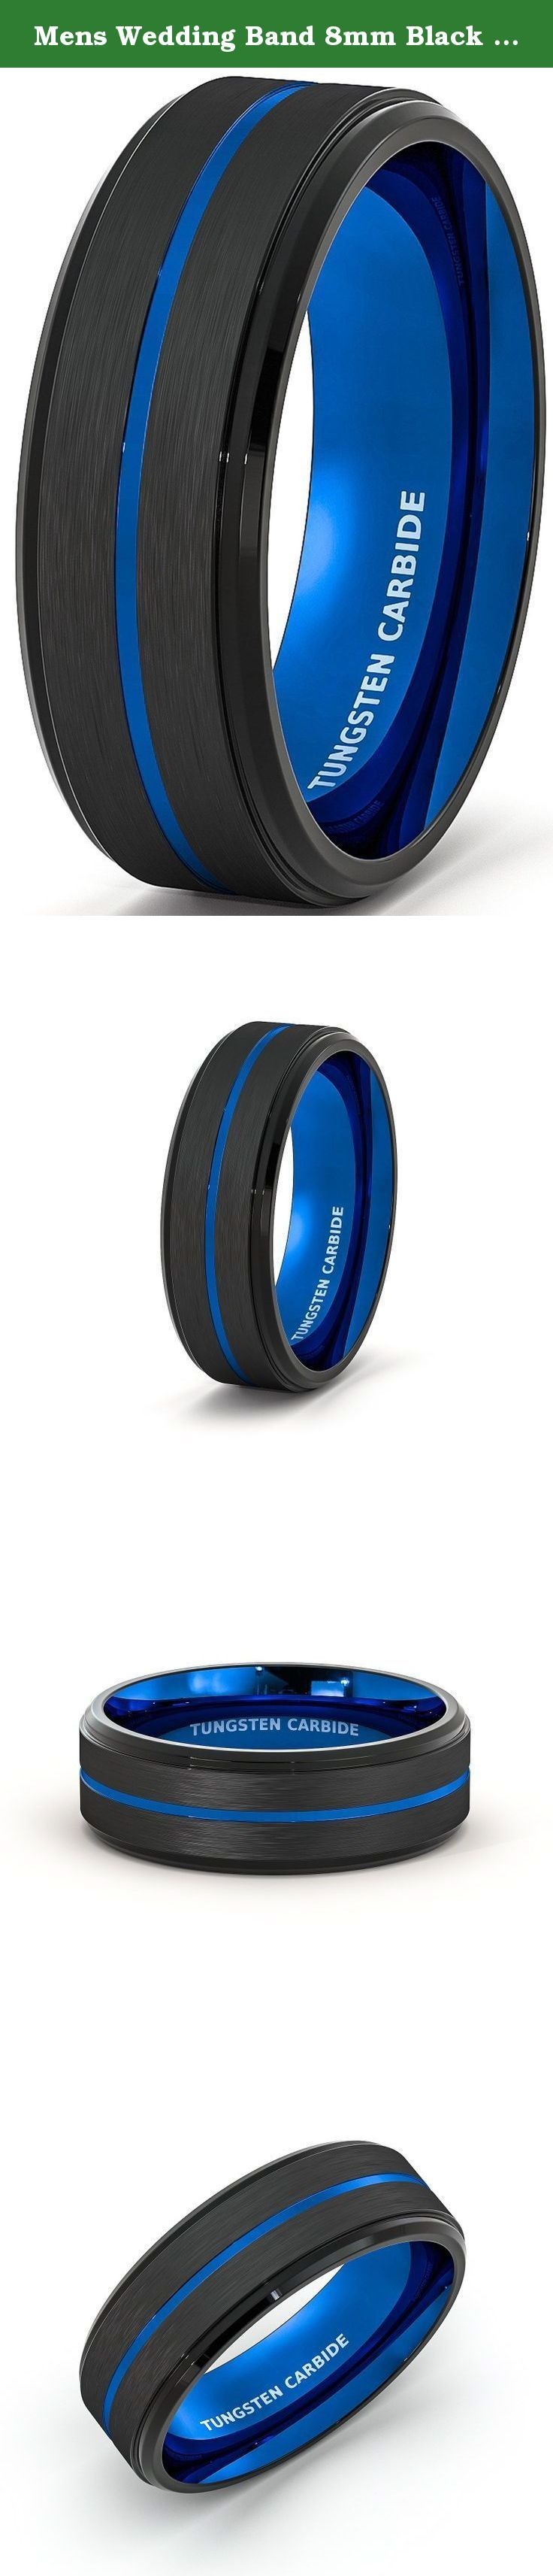 Mens Wedding Band 8mm Black Brushed Tungsten Ring Thin Blue Groove Step Edge Comfort Fit (7). Width: 8mm Fit: Comfort Fit Thickness: 2.3mm, Weight: Approximately 12-17g depend on sizes, Surface: Brushed Edge: Step Edge, Color: Black and Blue.